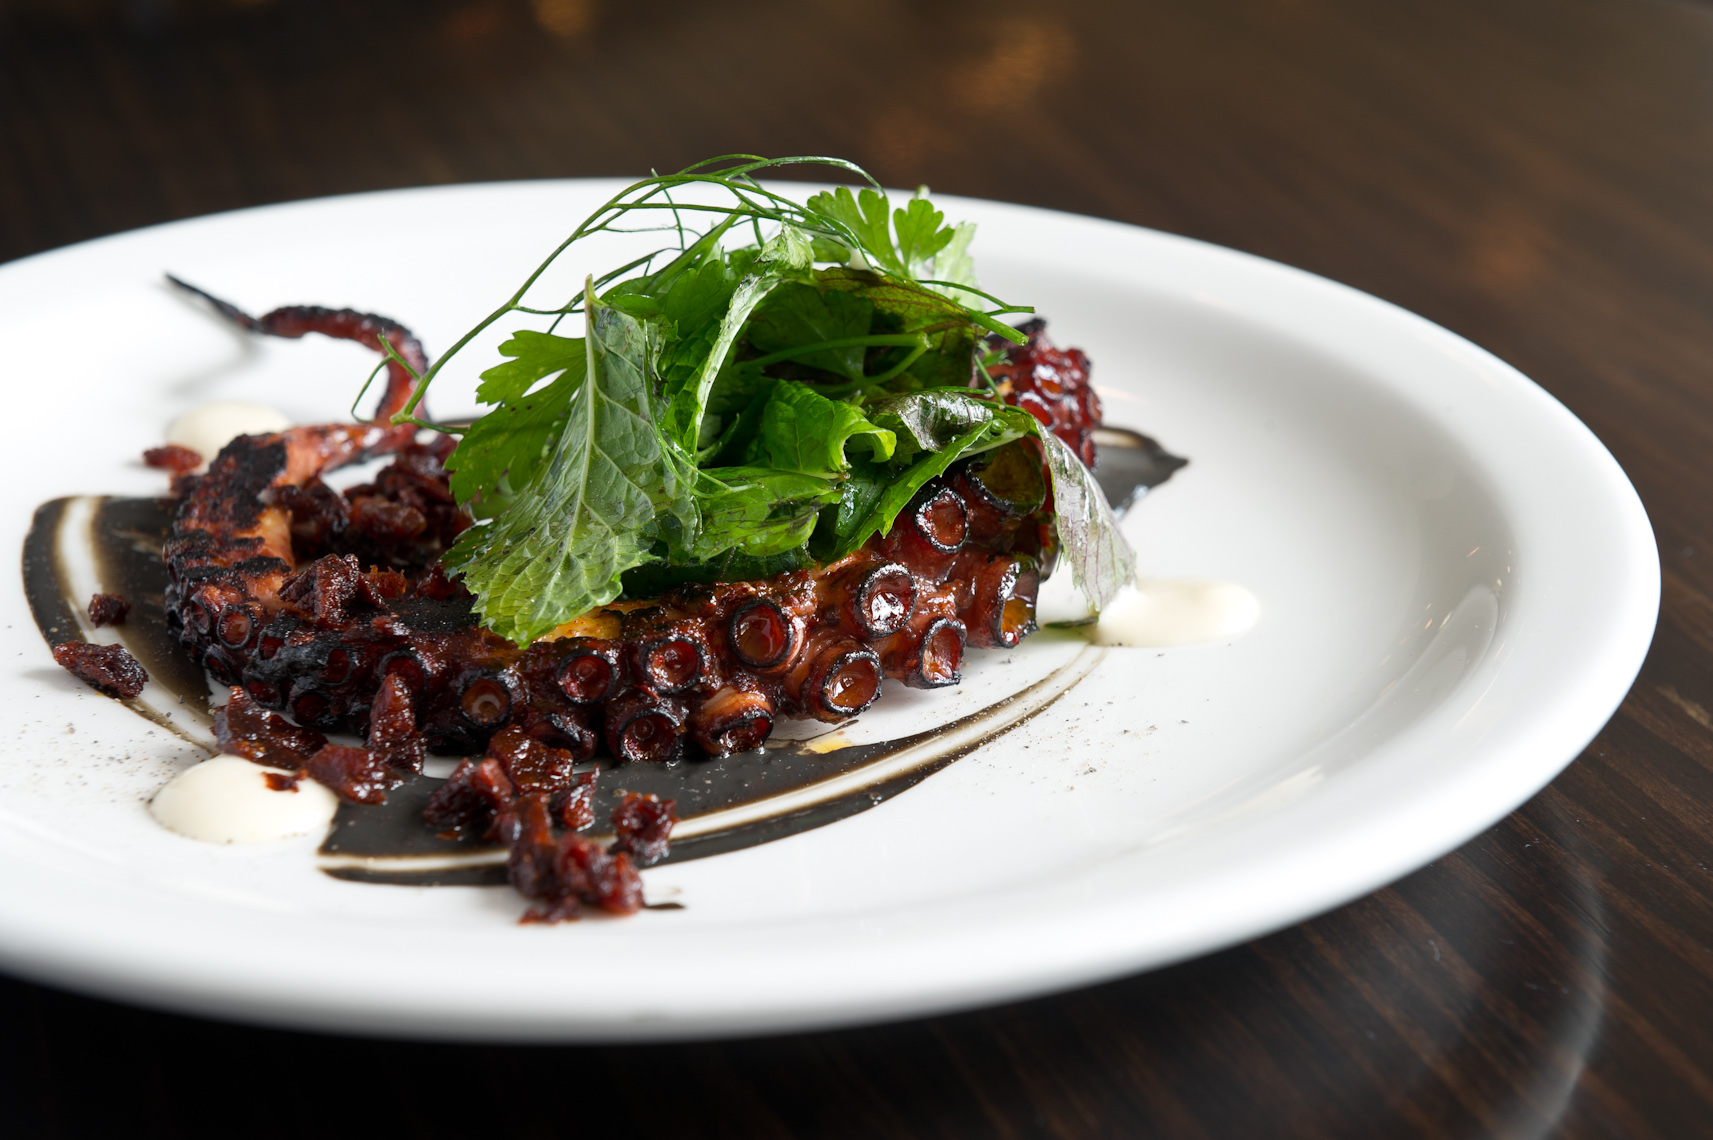 NYC Food Photographer - Octopus A La Plancha